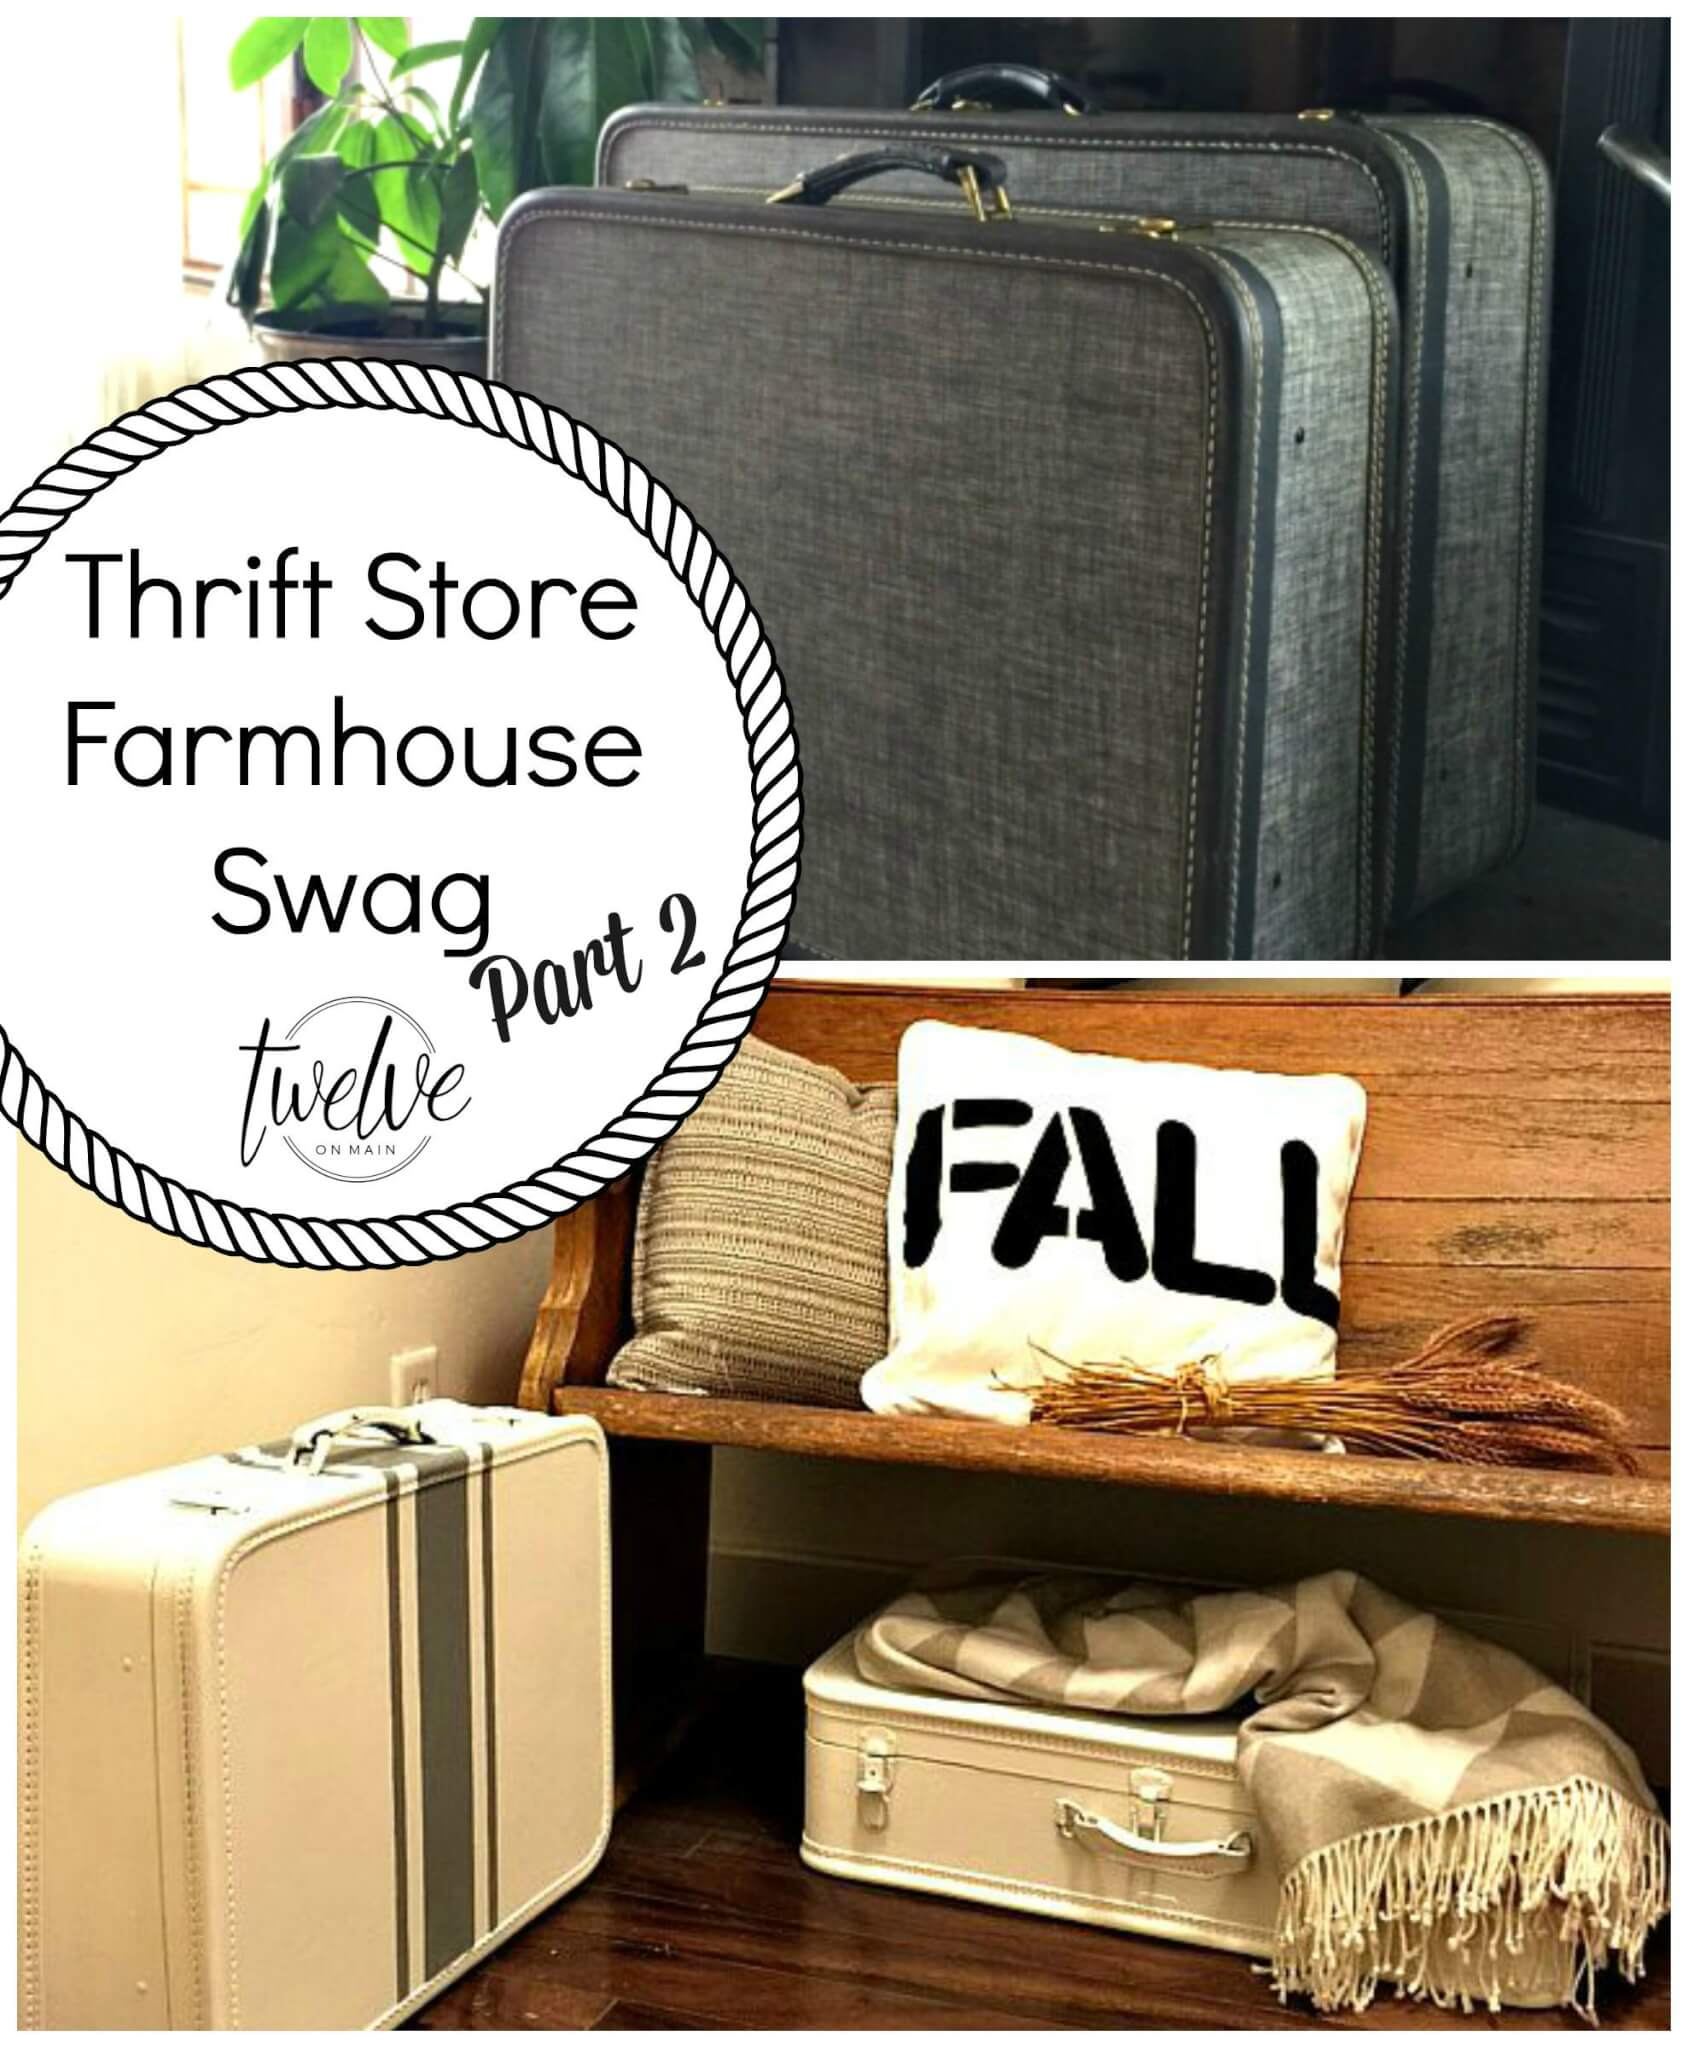 Thrift Store Farmhouse Swag